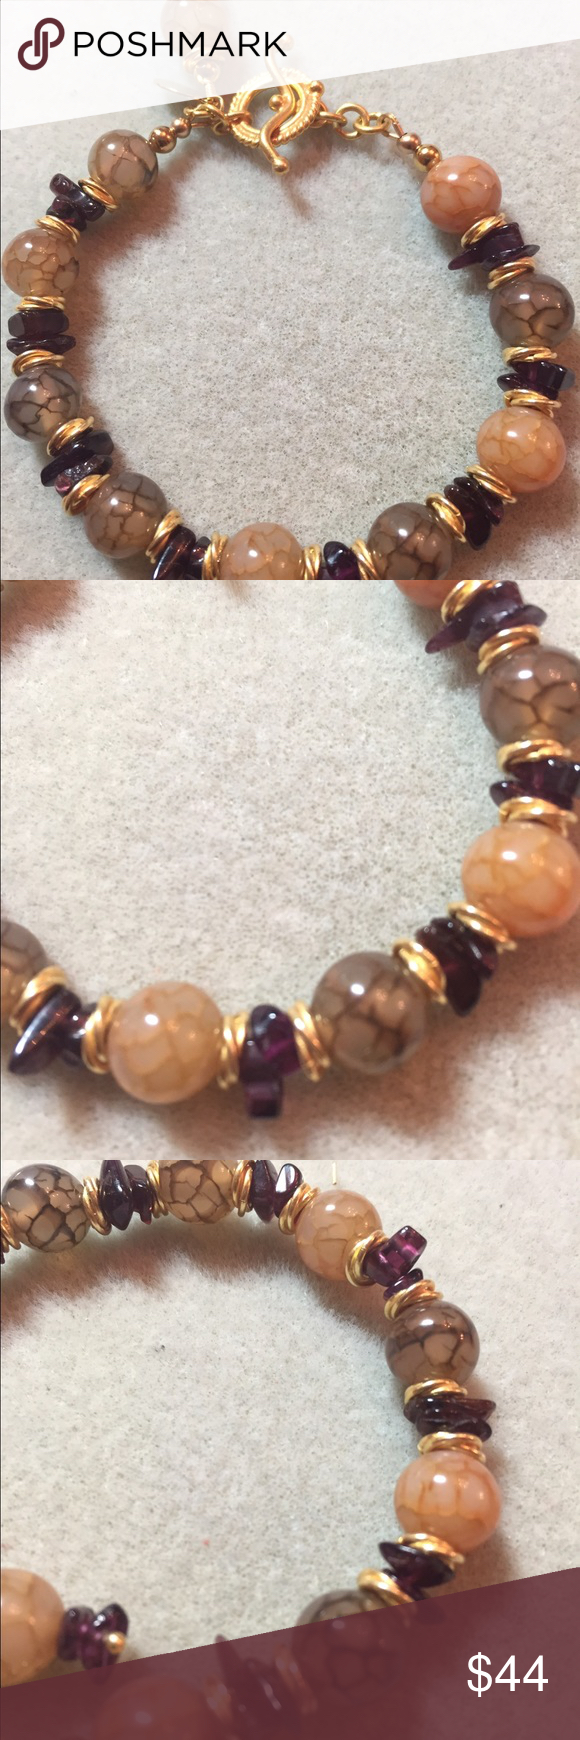 Selling this Bracelet lace agate, amethyst  gold vermeil on Poshmark! My username is: lstory98. #shopmycloset #poshmark #fashion #shopping #style #forsale #Jewelry